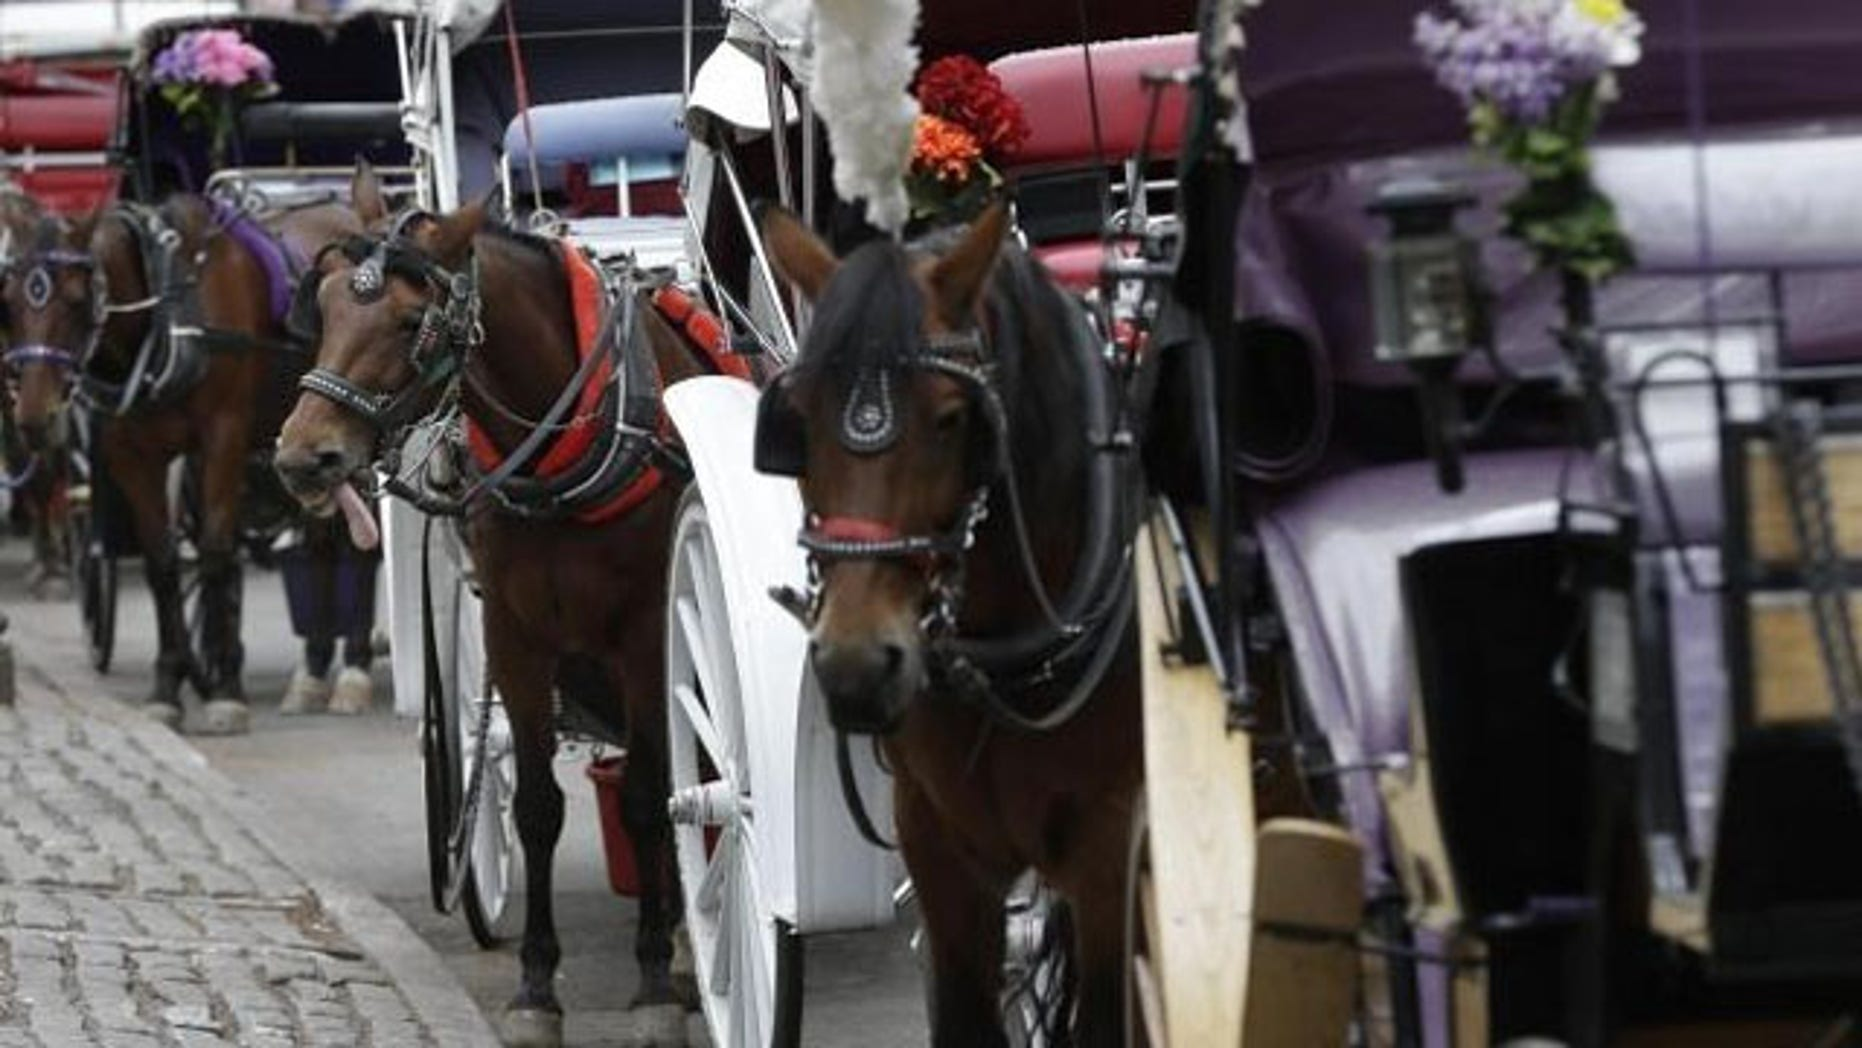 Horses and carriages wait for customers near New York's Central Park (AP/File)